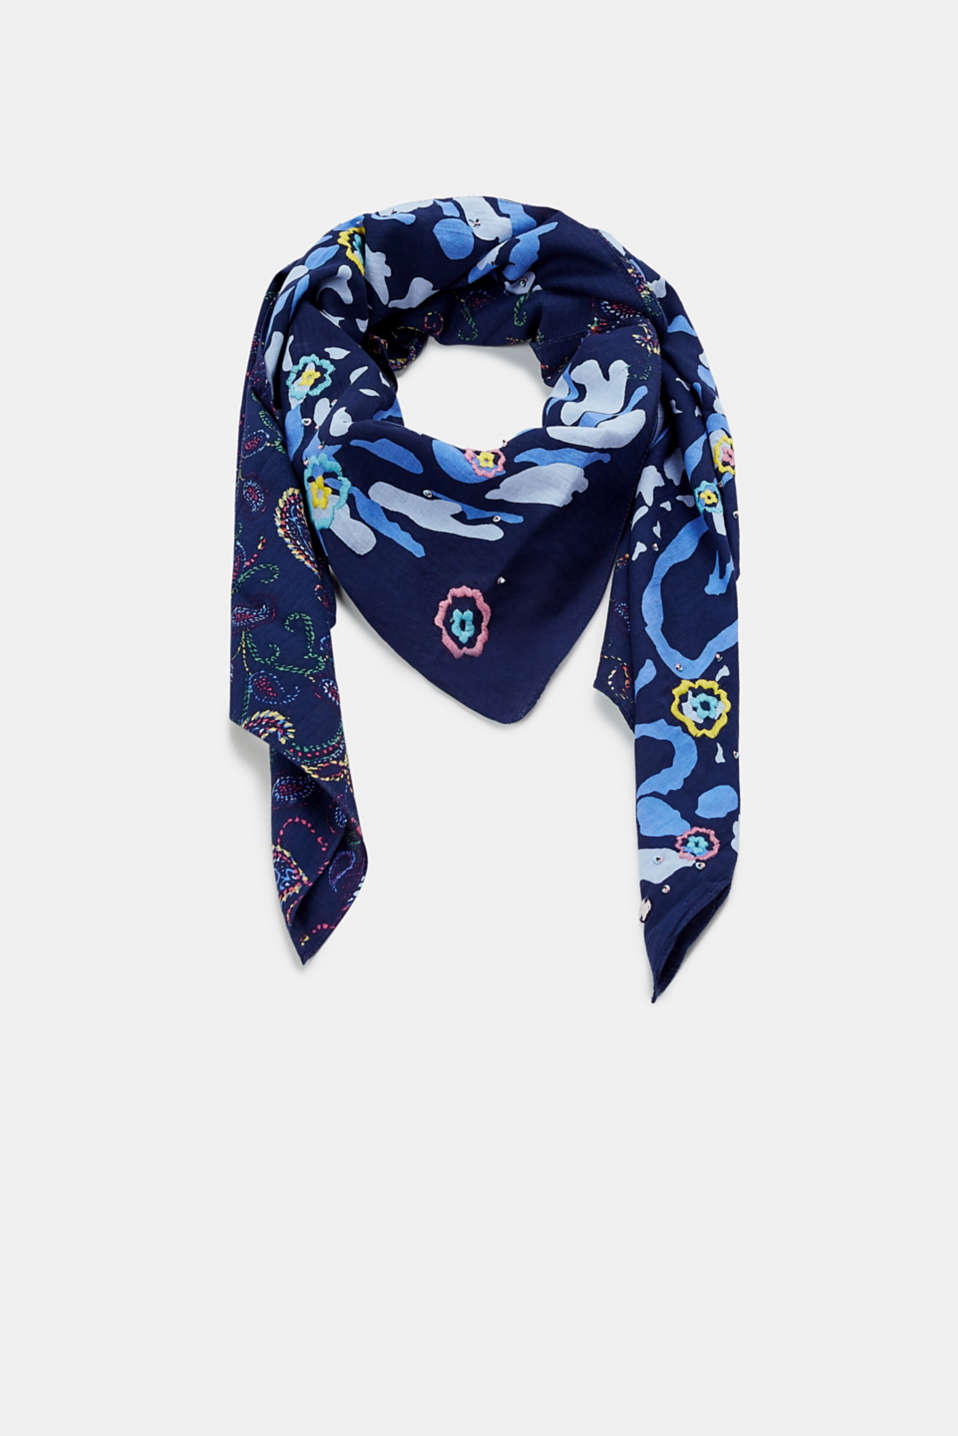 Esprit - Mixed pattern scarf with embroidery, 100% cotton